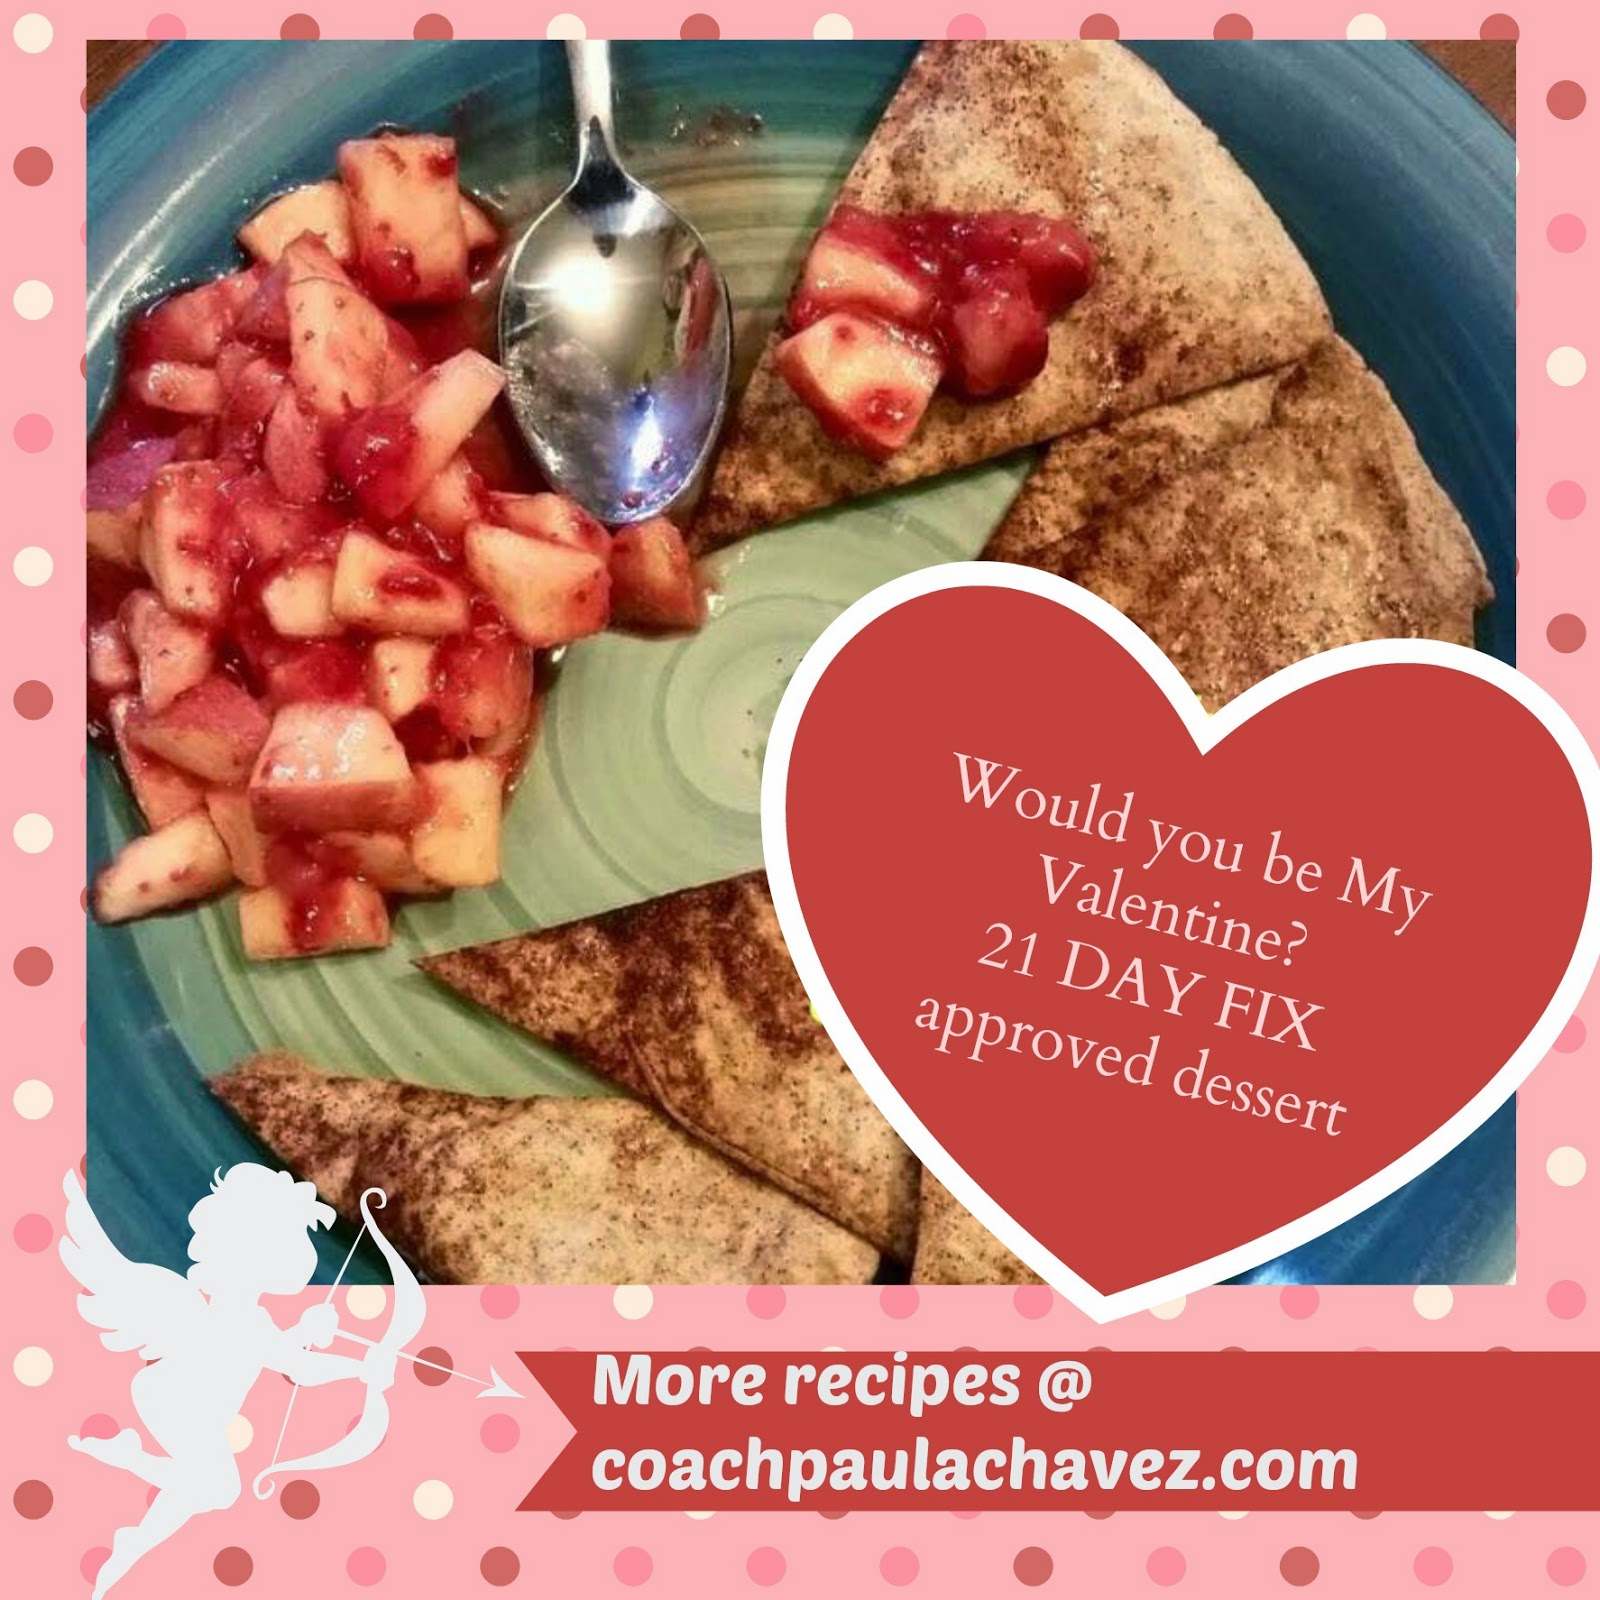 healthy dessert, clean eating recipes, 21 day fix approved, best coach, valentines day desserts, cinnamon chips, fruit salad, reto beachbody, entrenadora beachbody, coach paula chavez